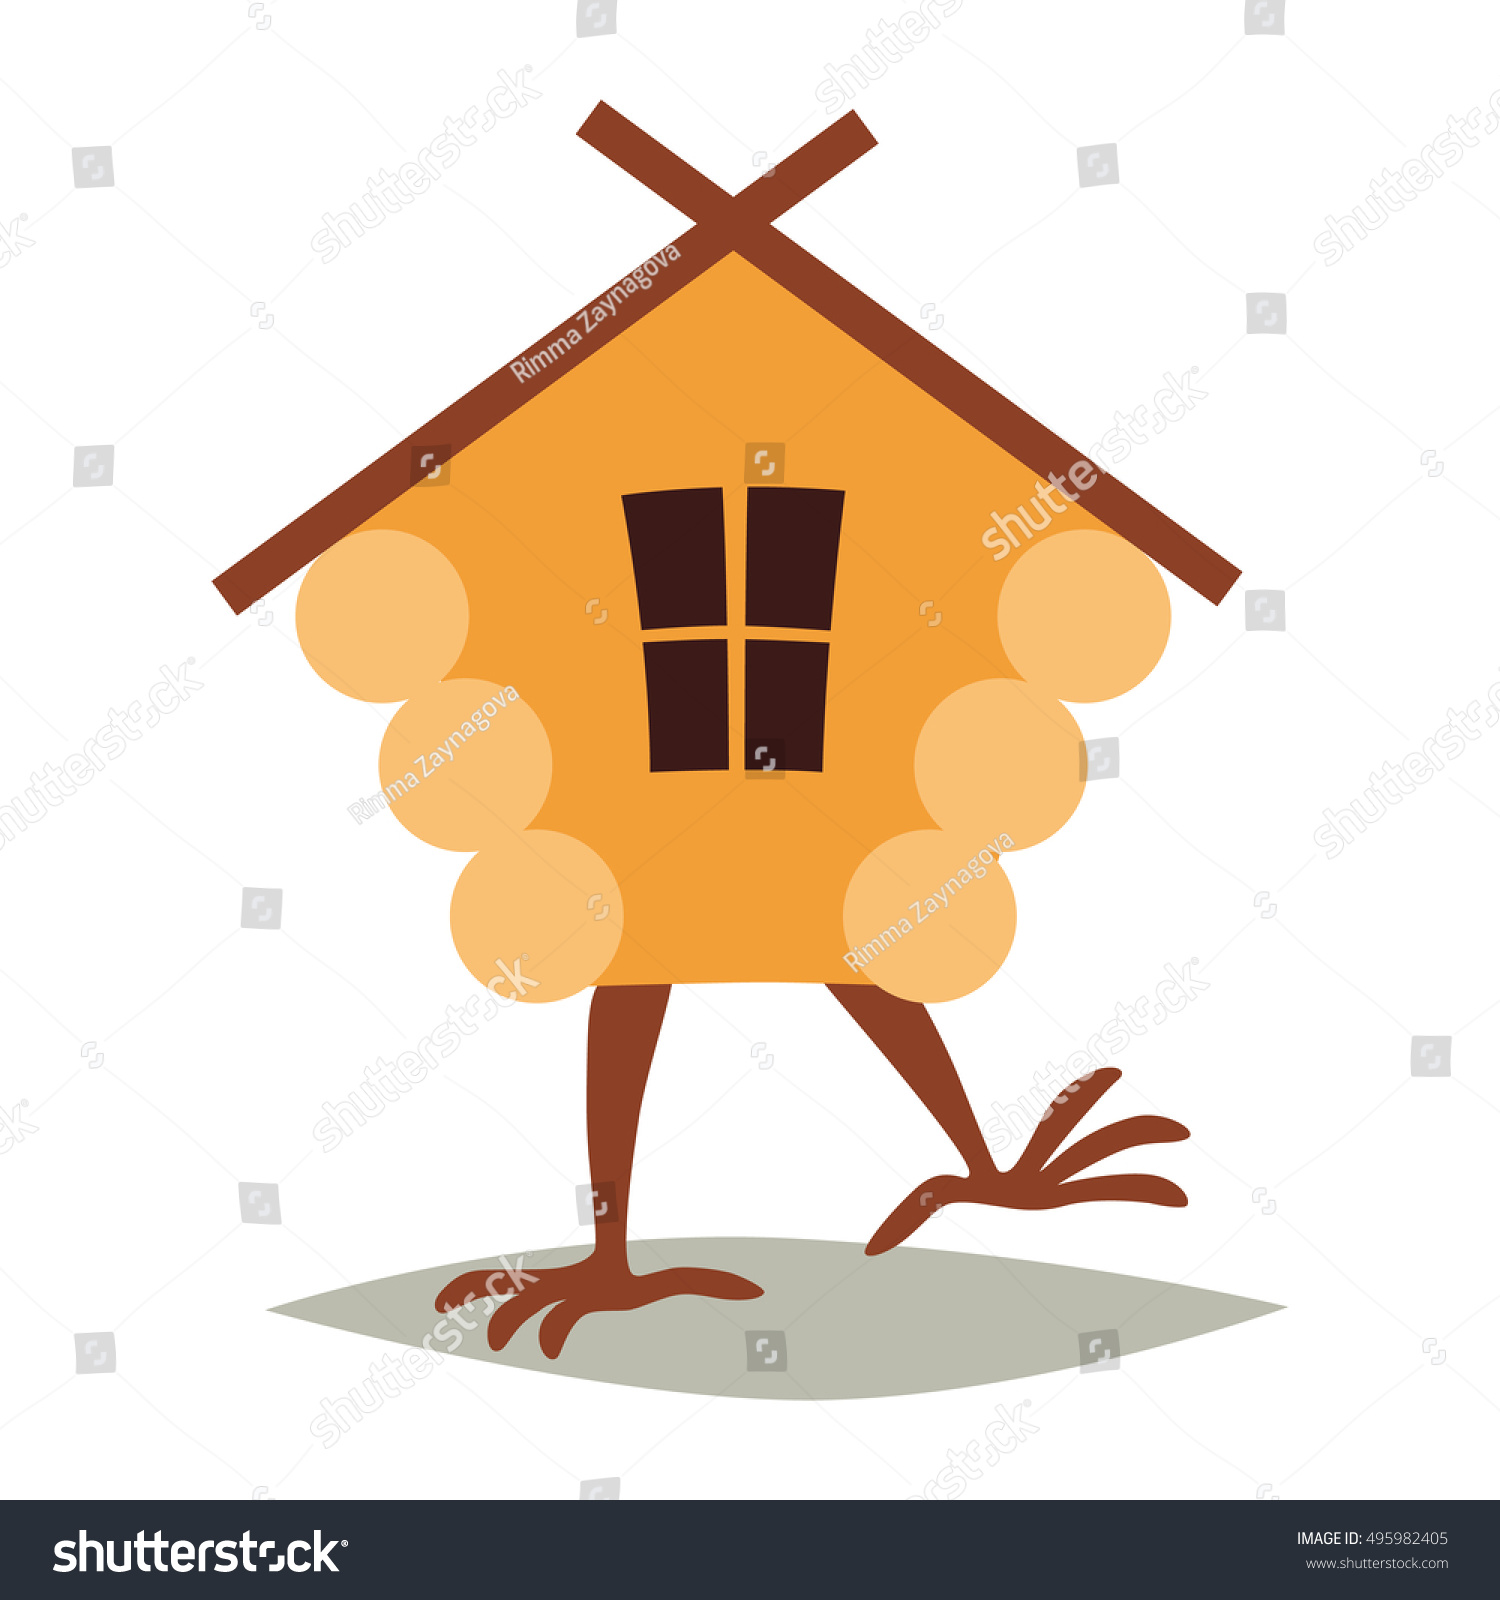 Hut House Logo: Hut On Chicken Legs Vector Cartoon Stock Vector 495982405